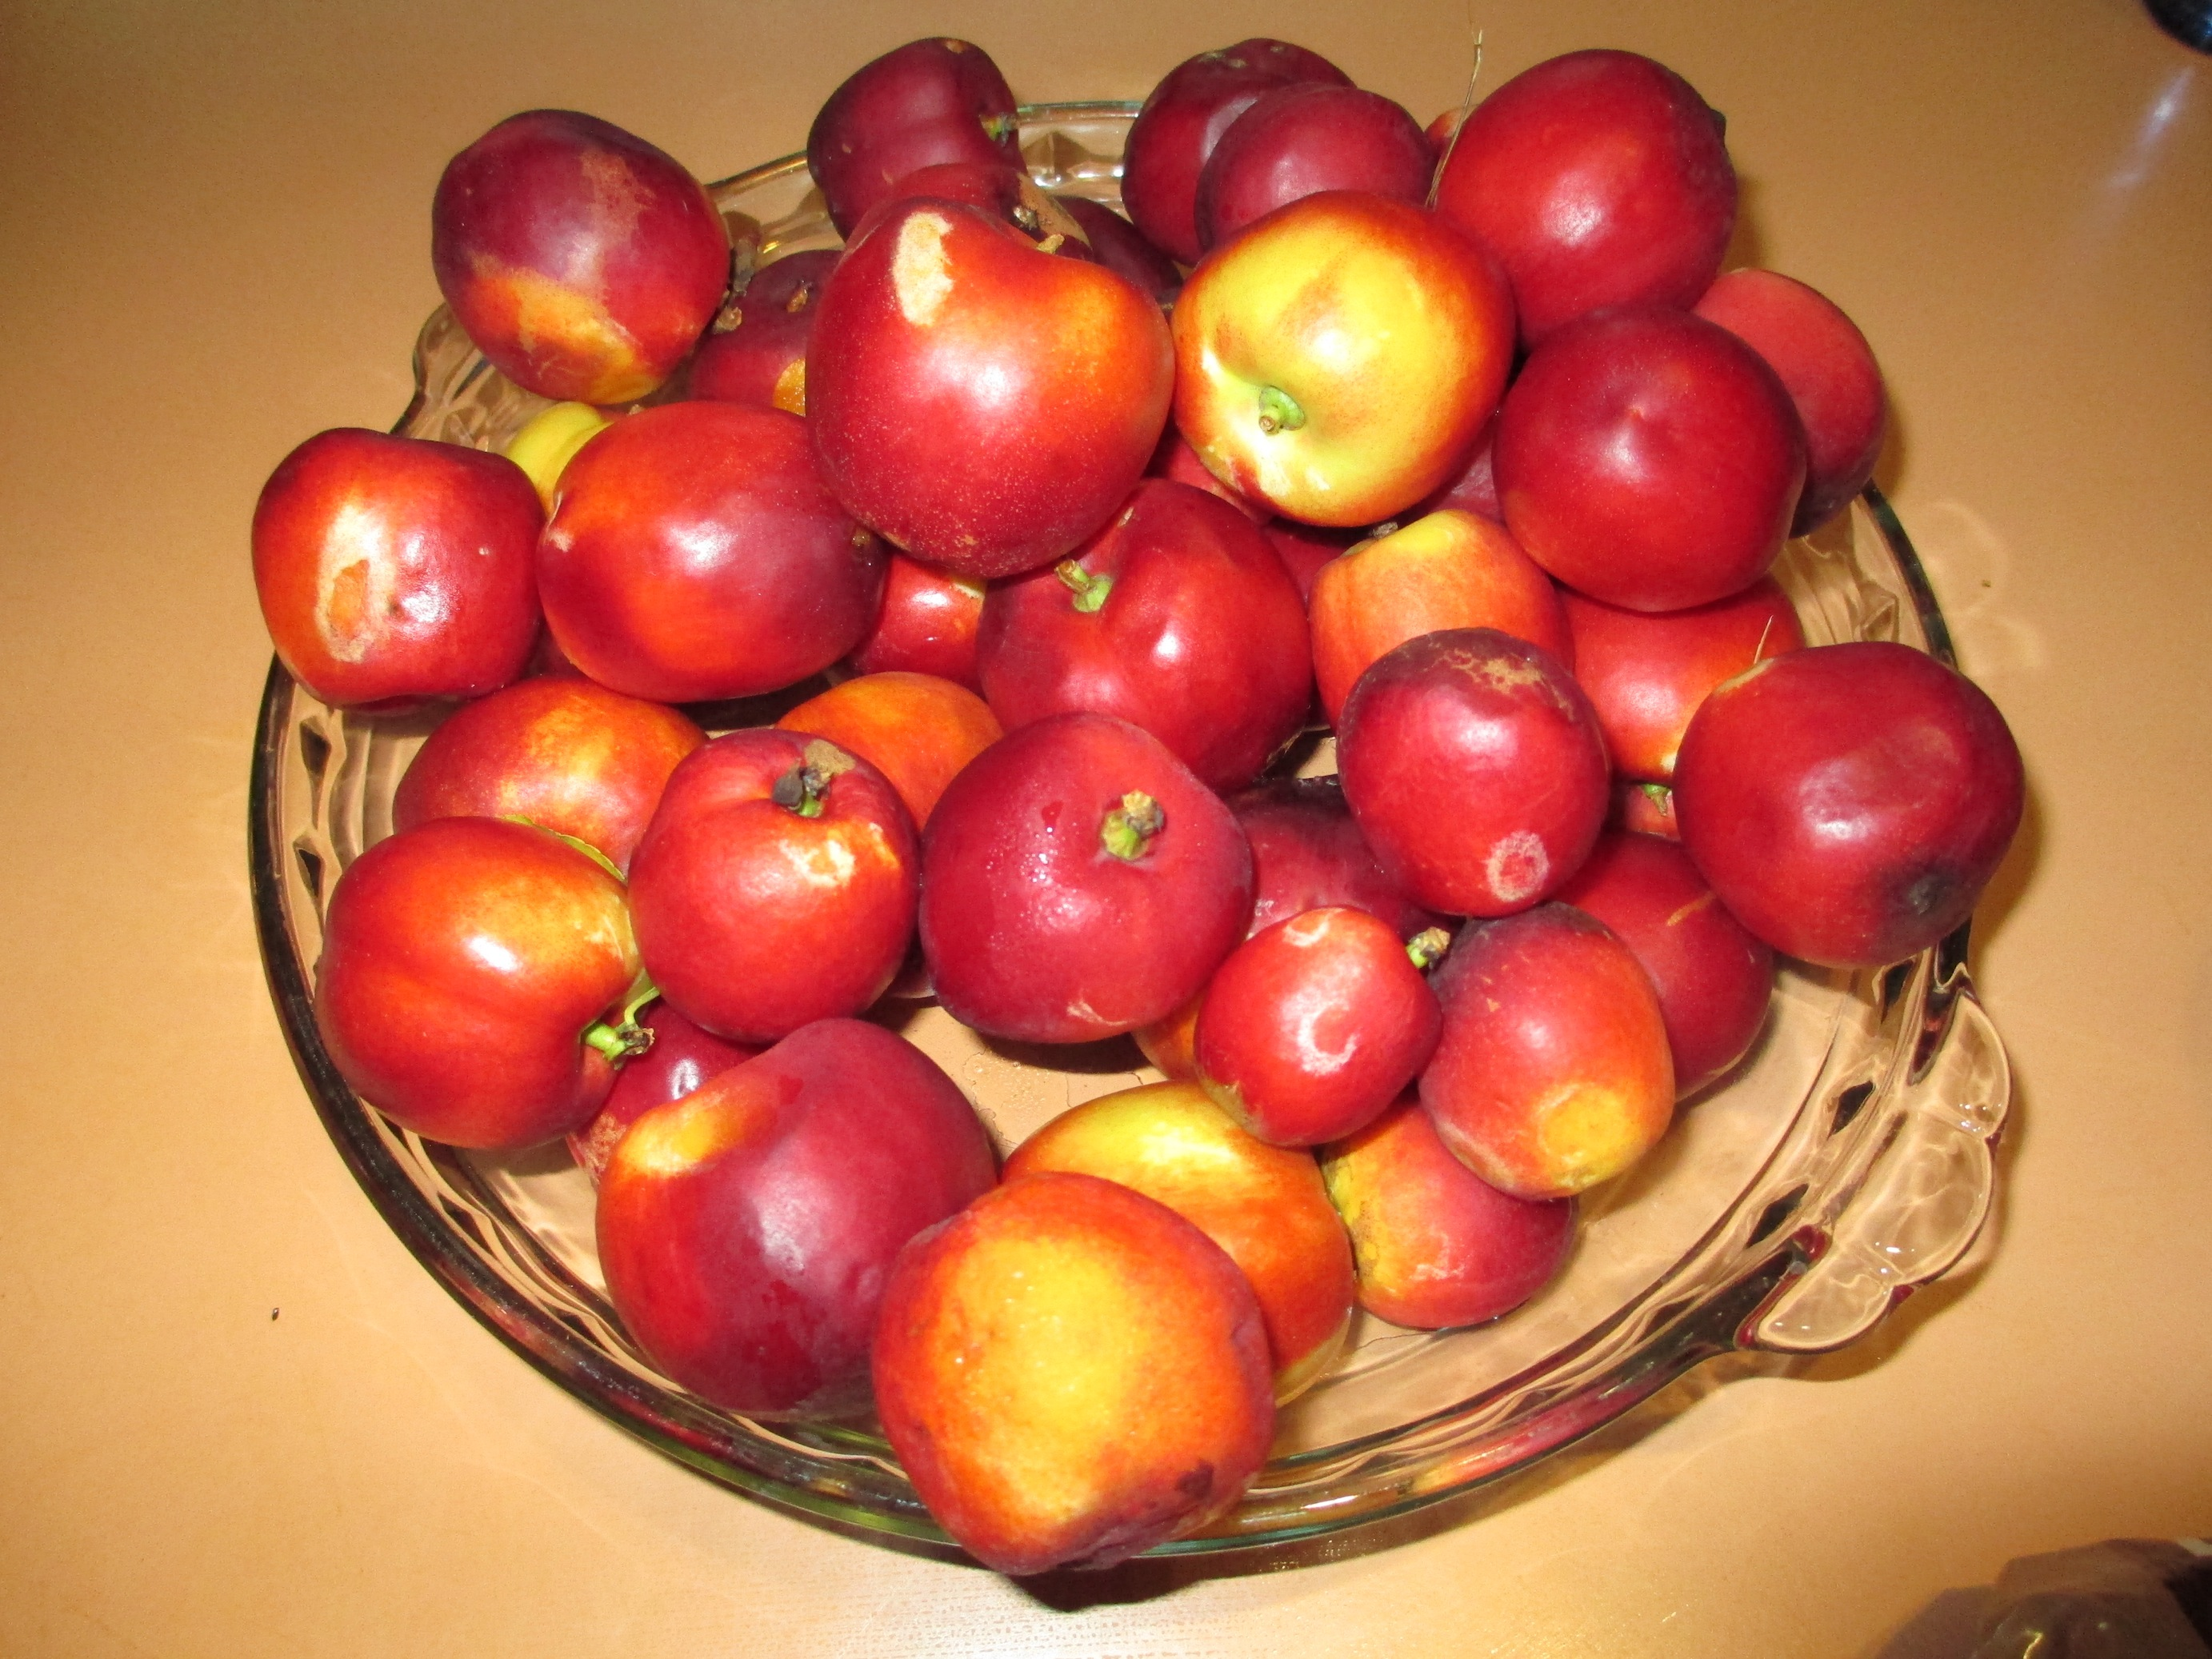 One day's harvest of nectarines!